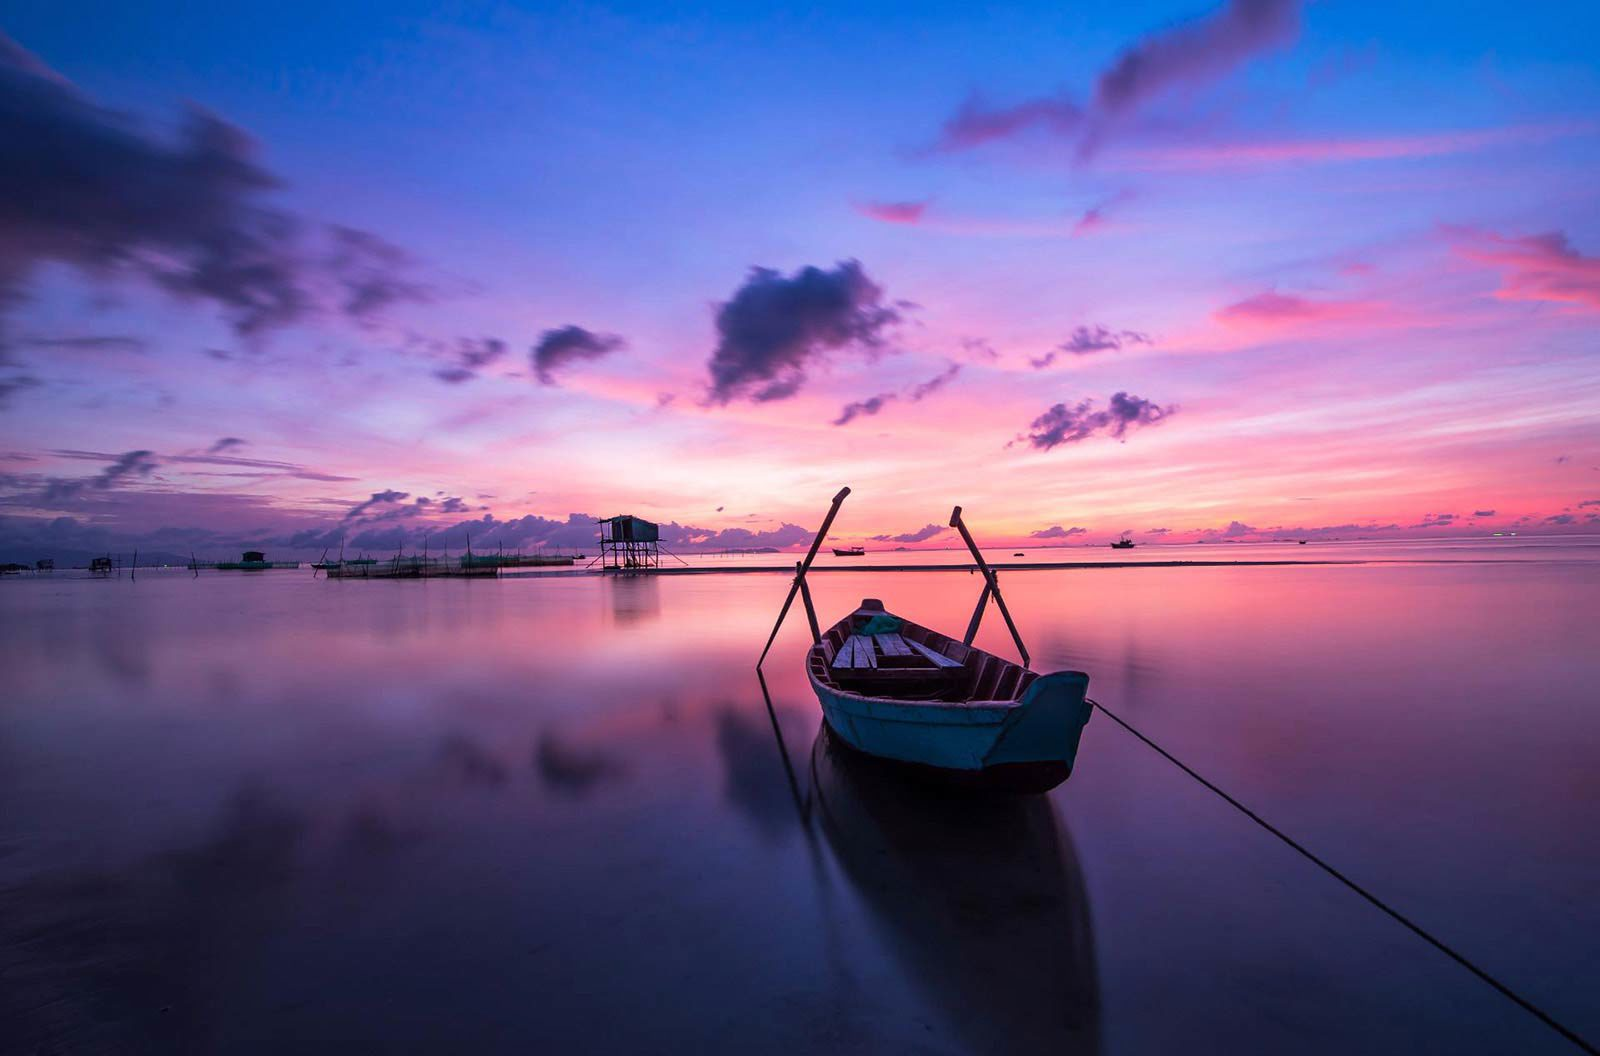 Row boat in middle of still water reflecting blue, pink and purple sky.